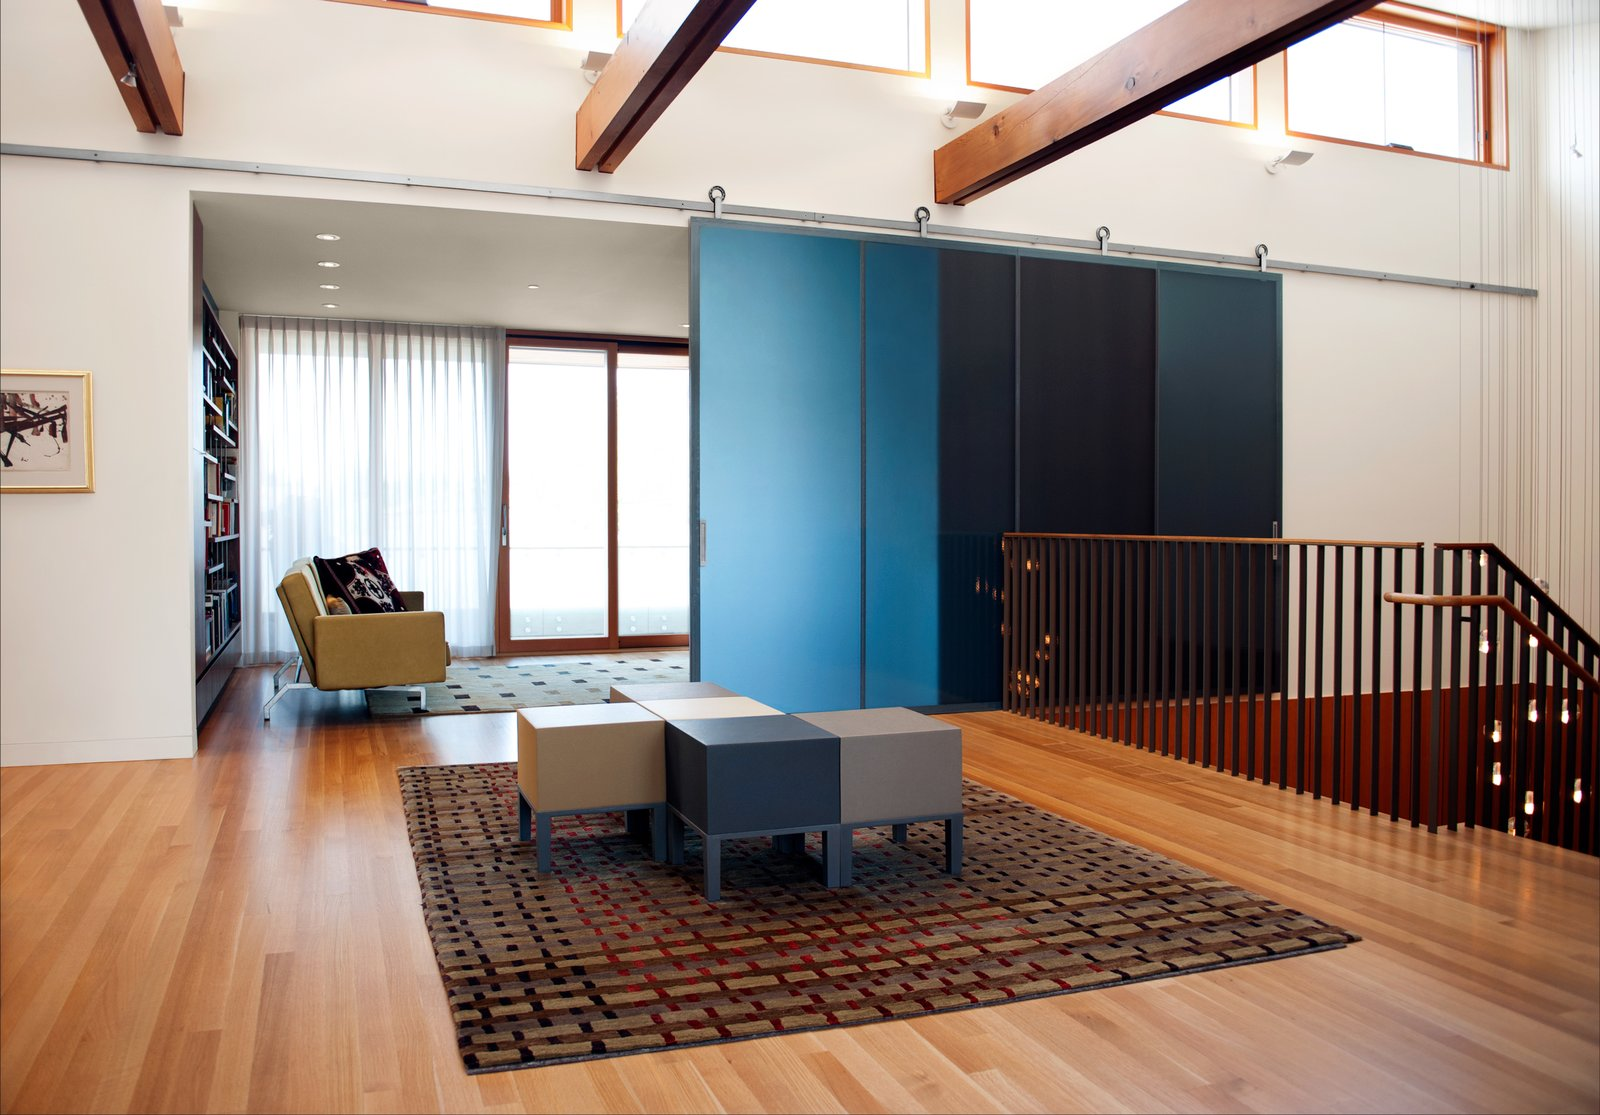 The DECA Architecture team designed a central gallery that connects the main stairwell entry to the dining room and living room.